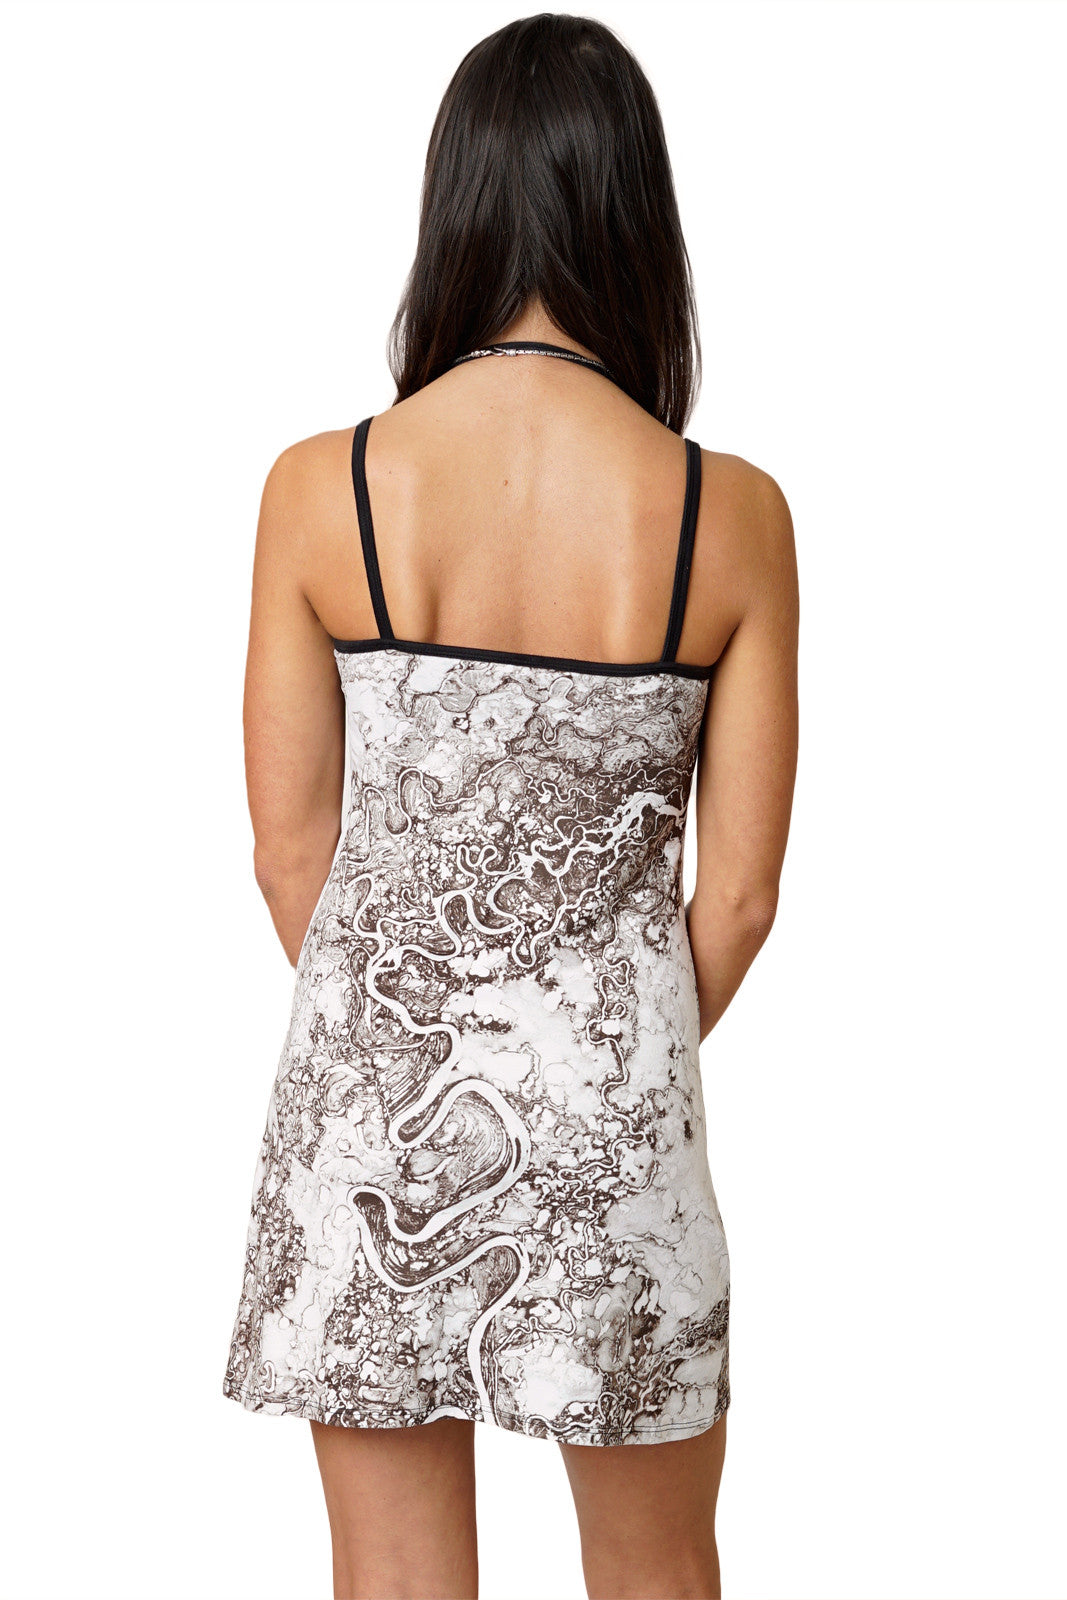 Mini Dress-Earthscapes Earth as Art-Earth Image Clothing- Mayn River